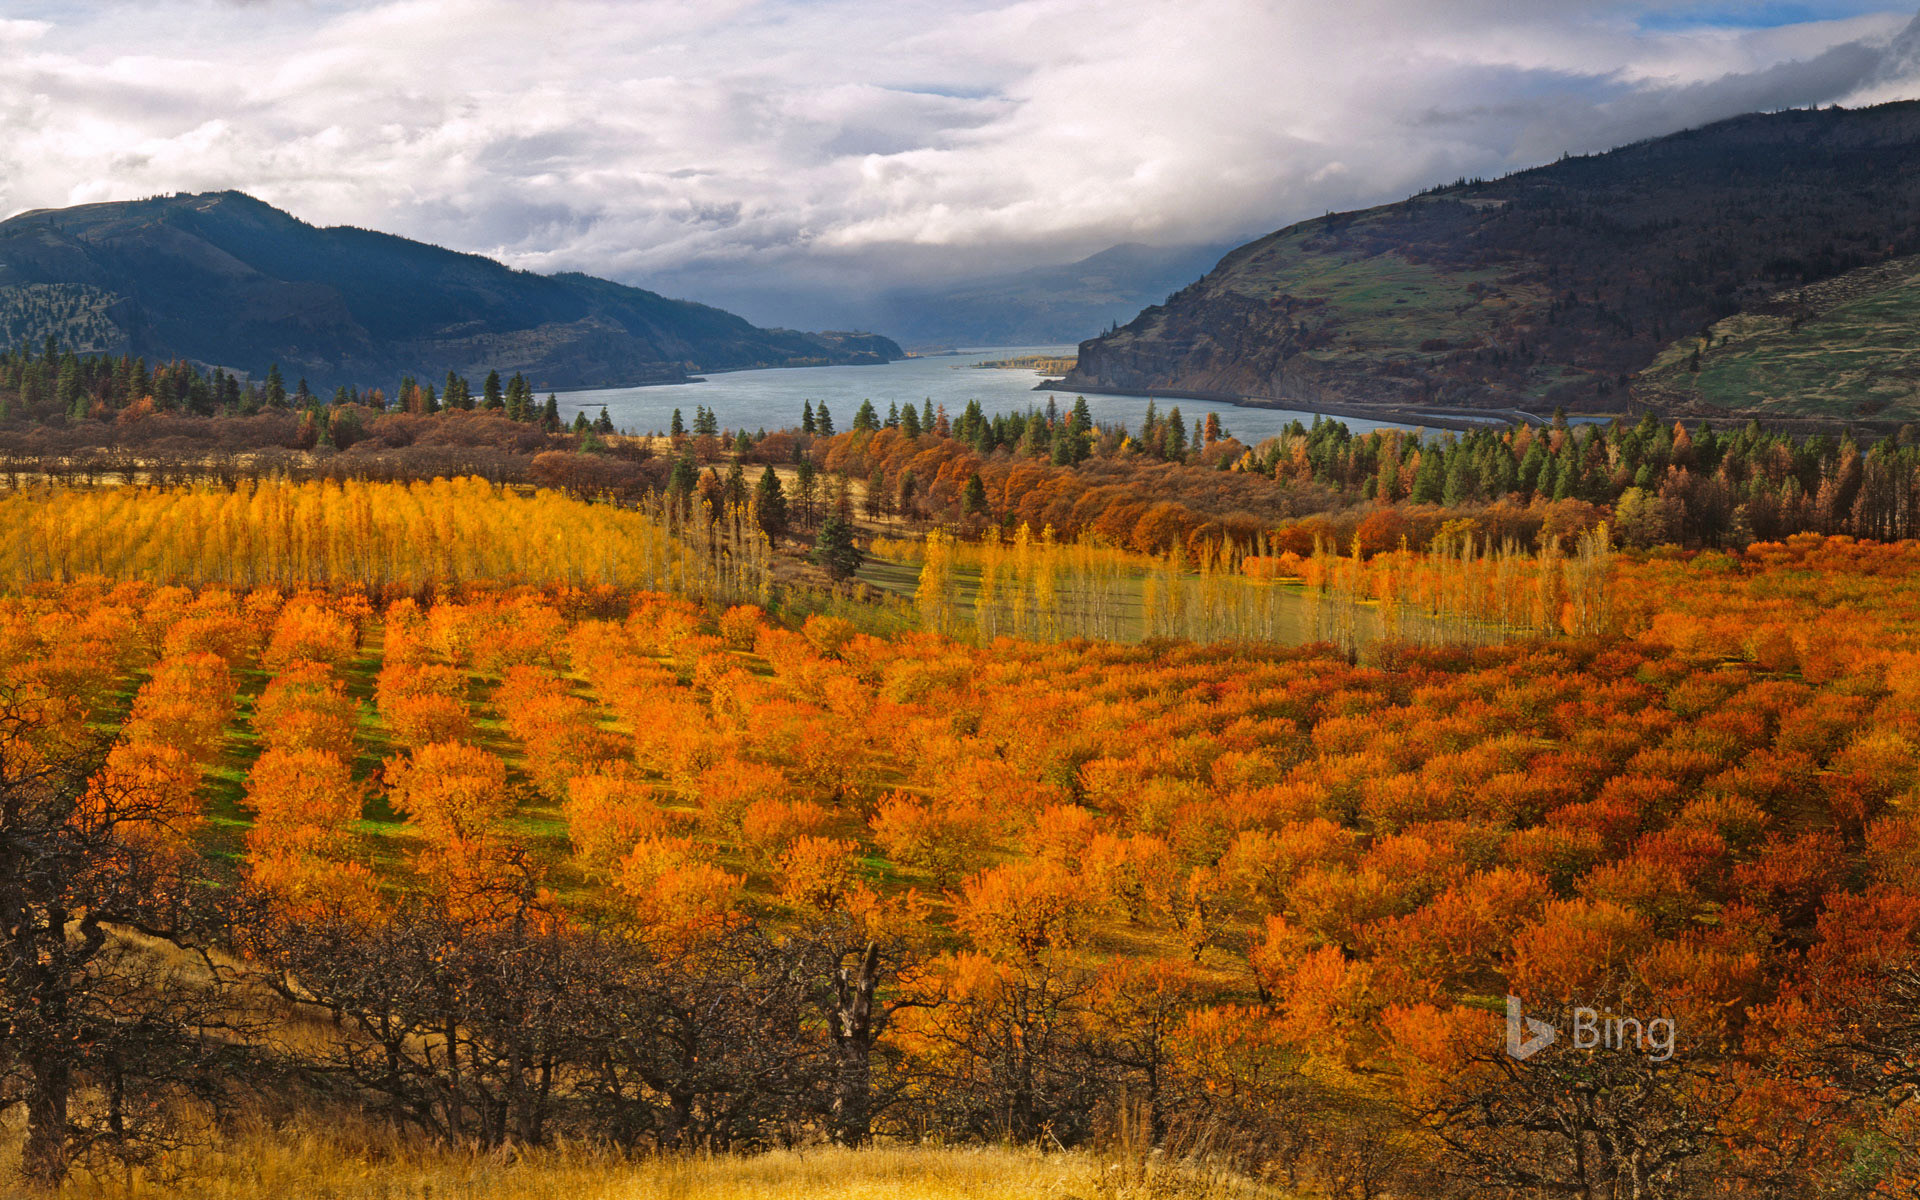 Cherry orchards overlooking the Columbia River Gorge National Scenic Area